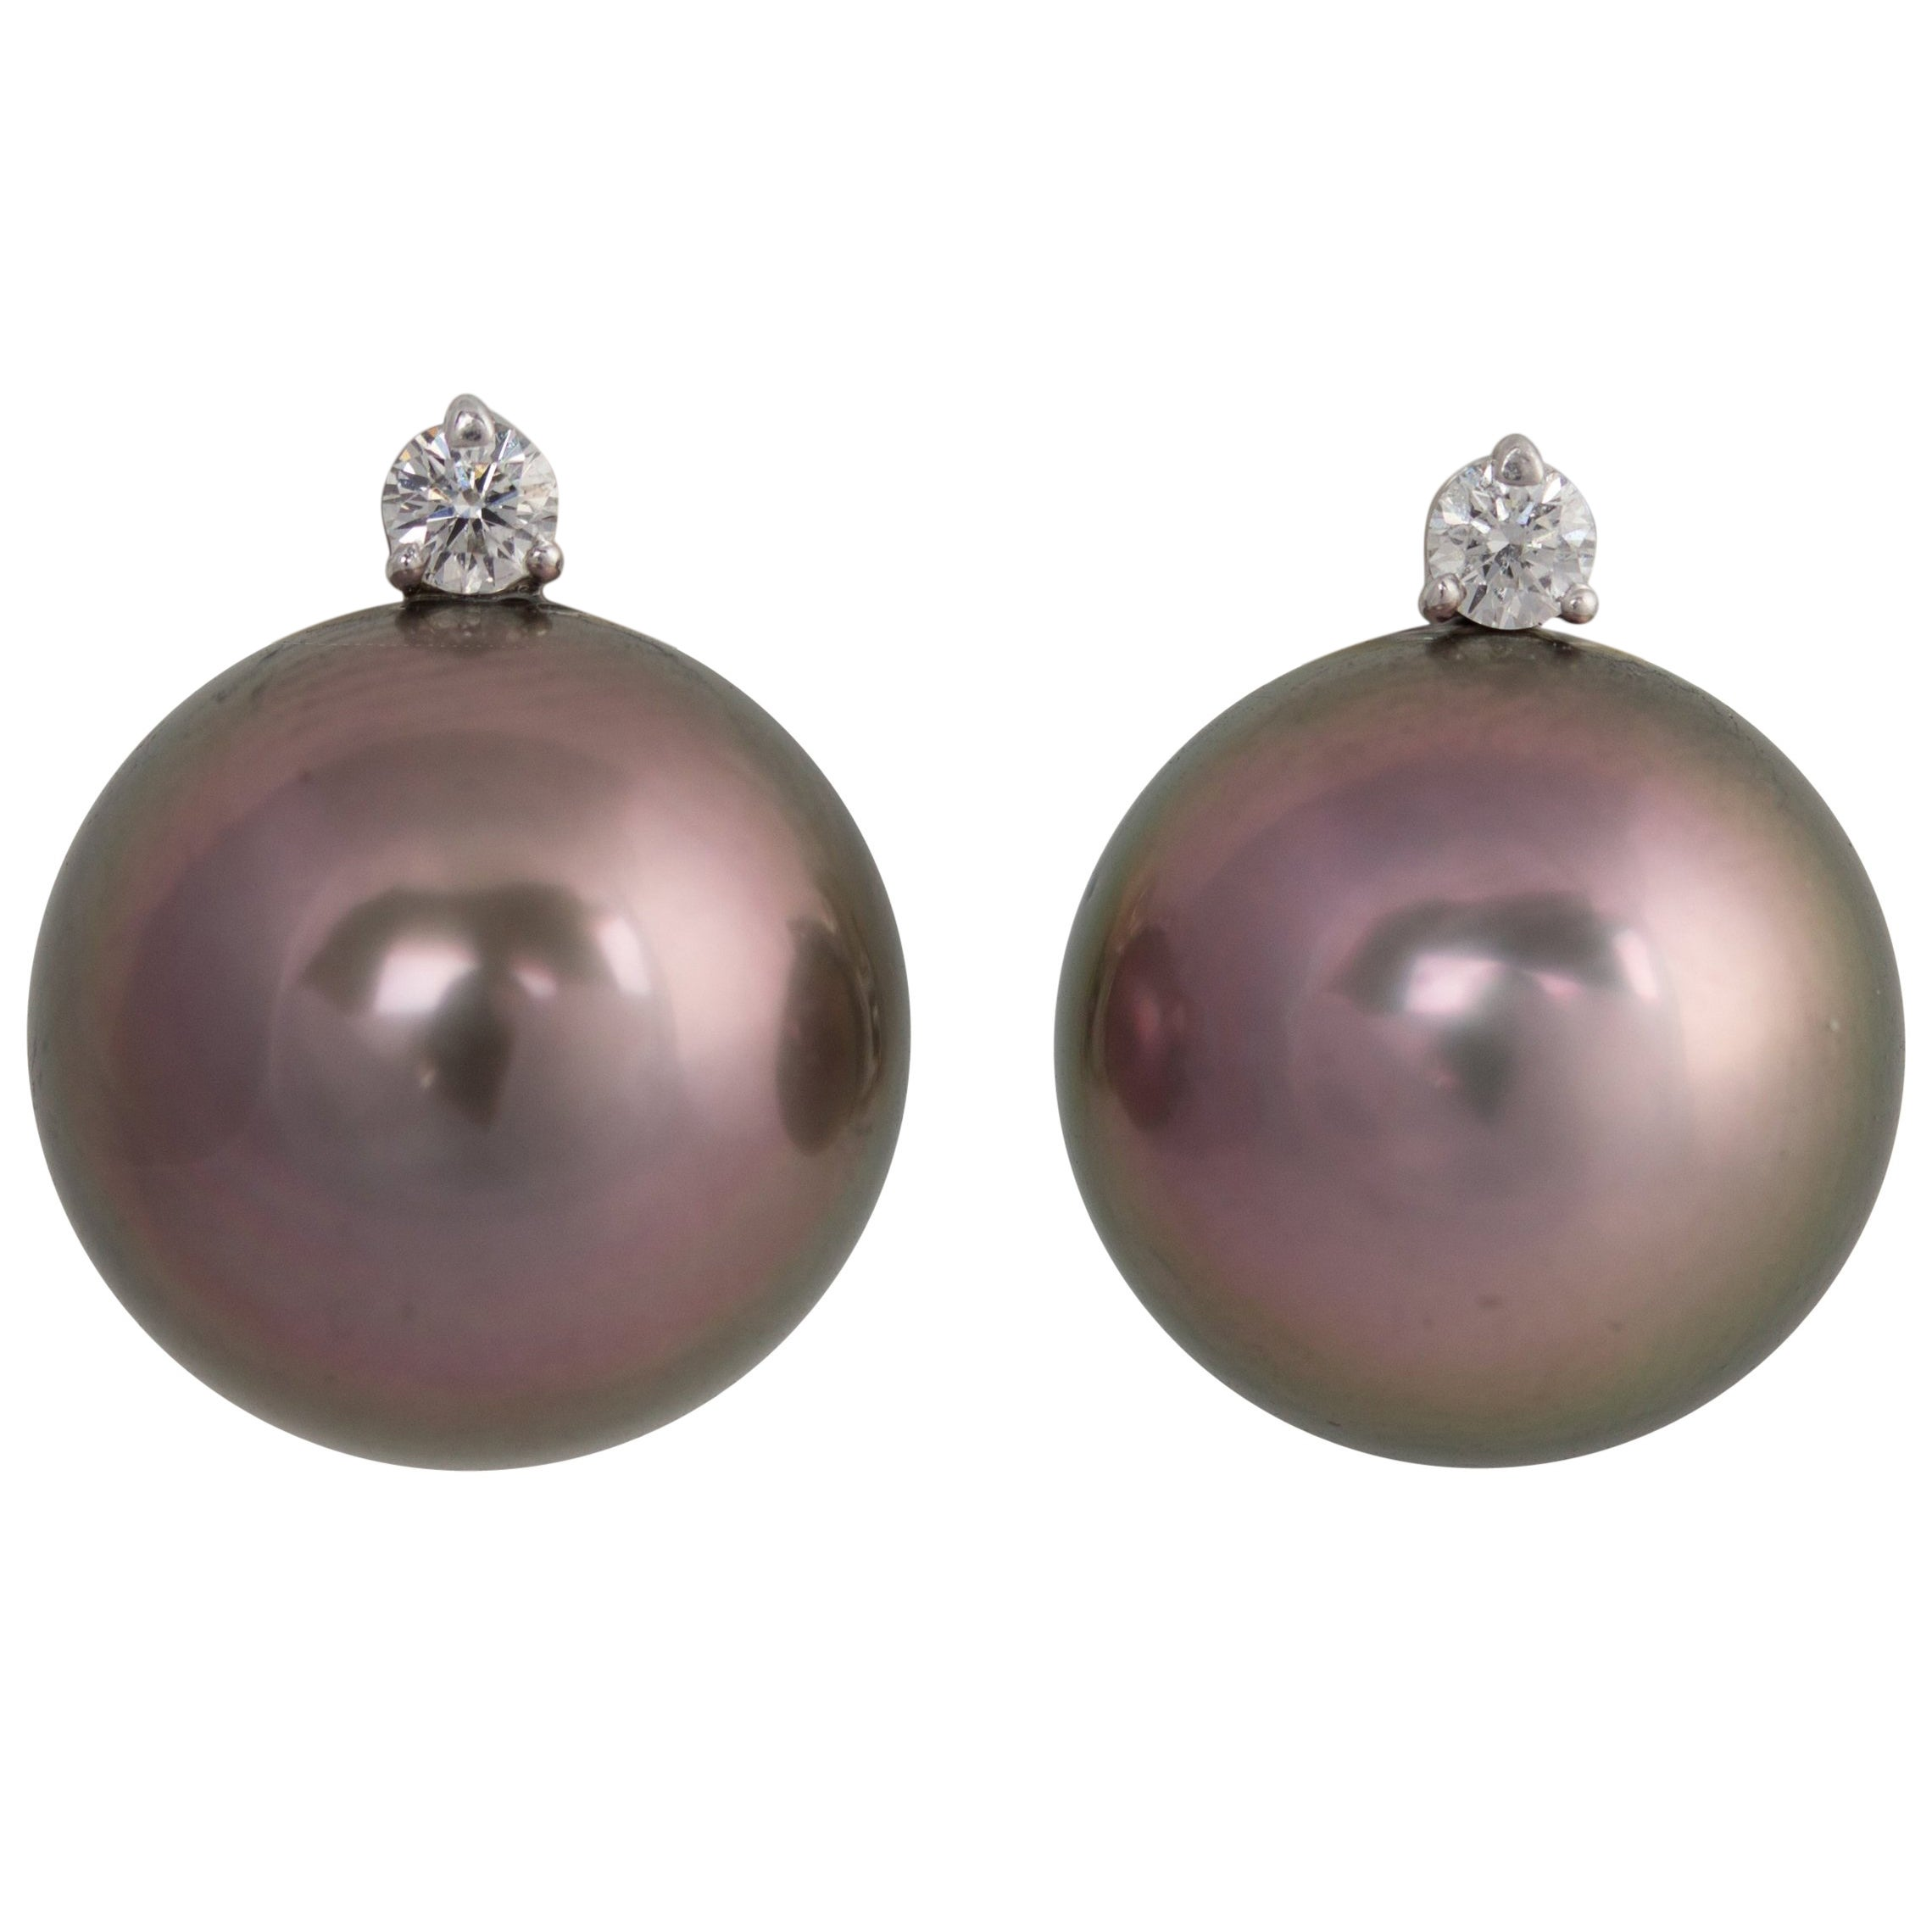 giant renate years big pearl wm glam new products earrings dsc eve luxurious and nye baroque shiny